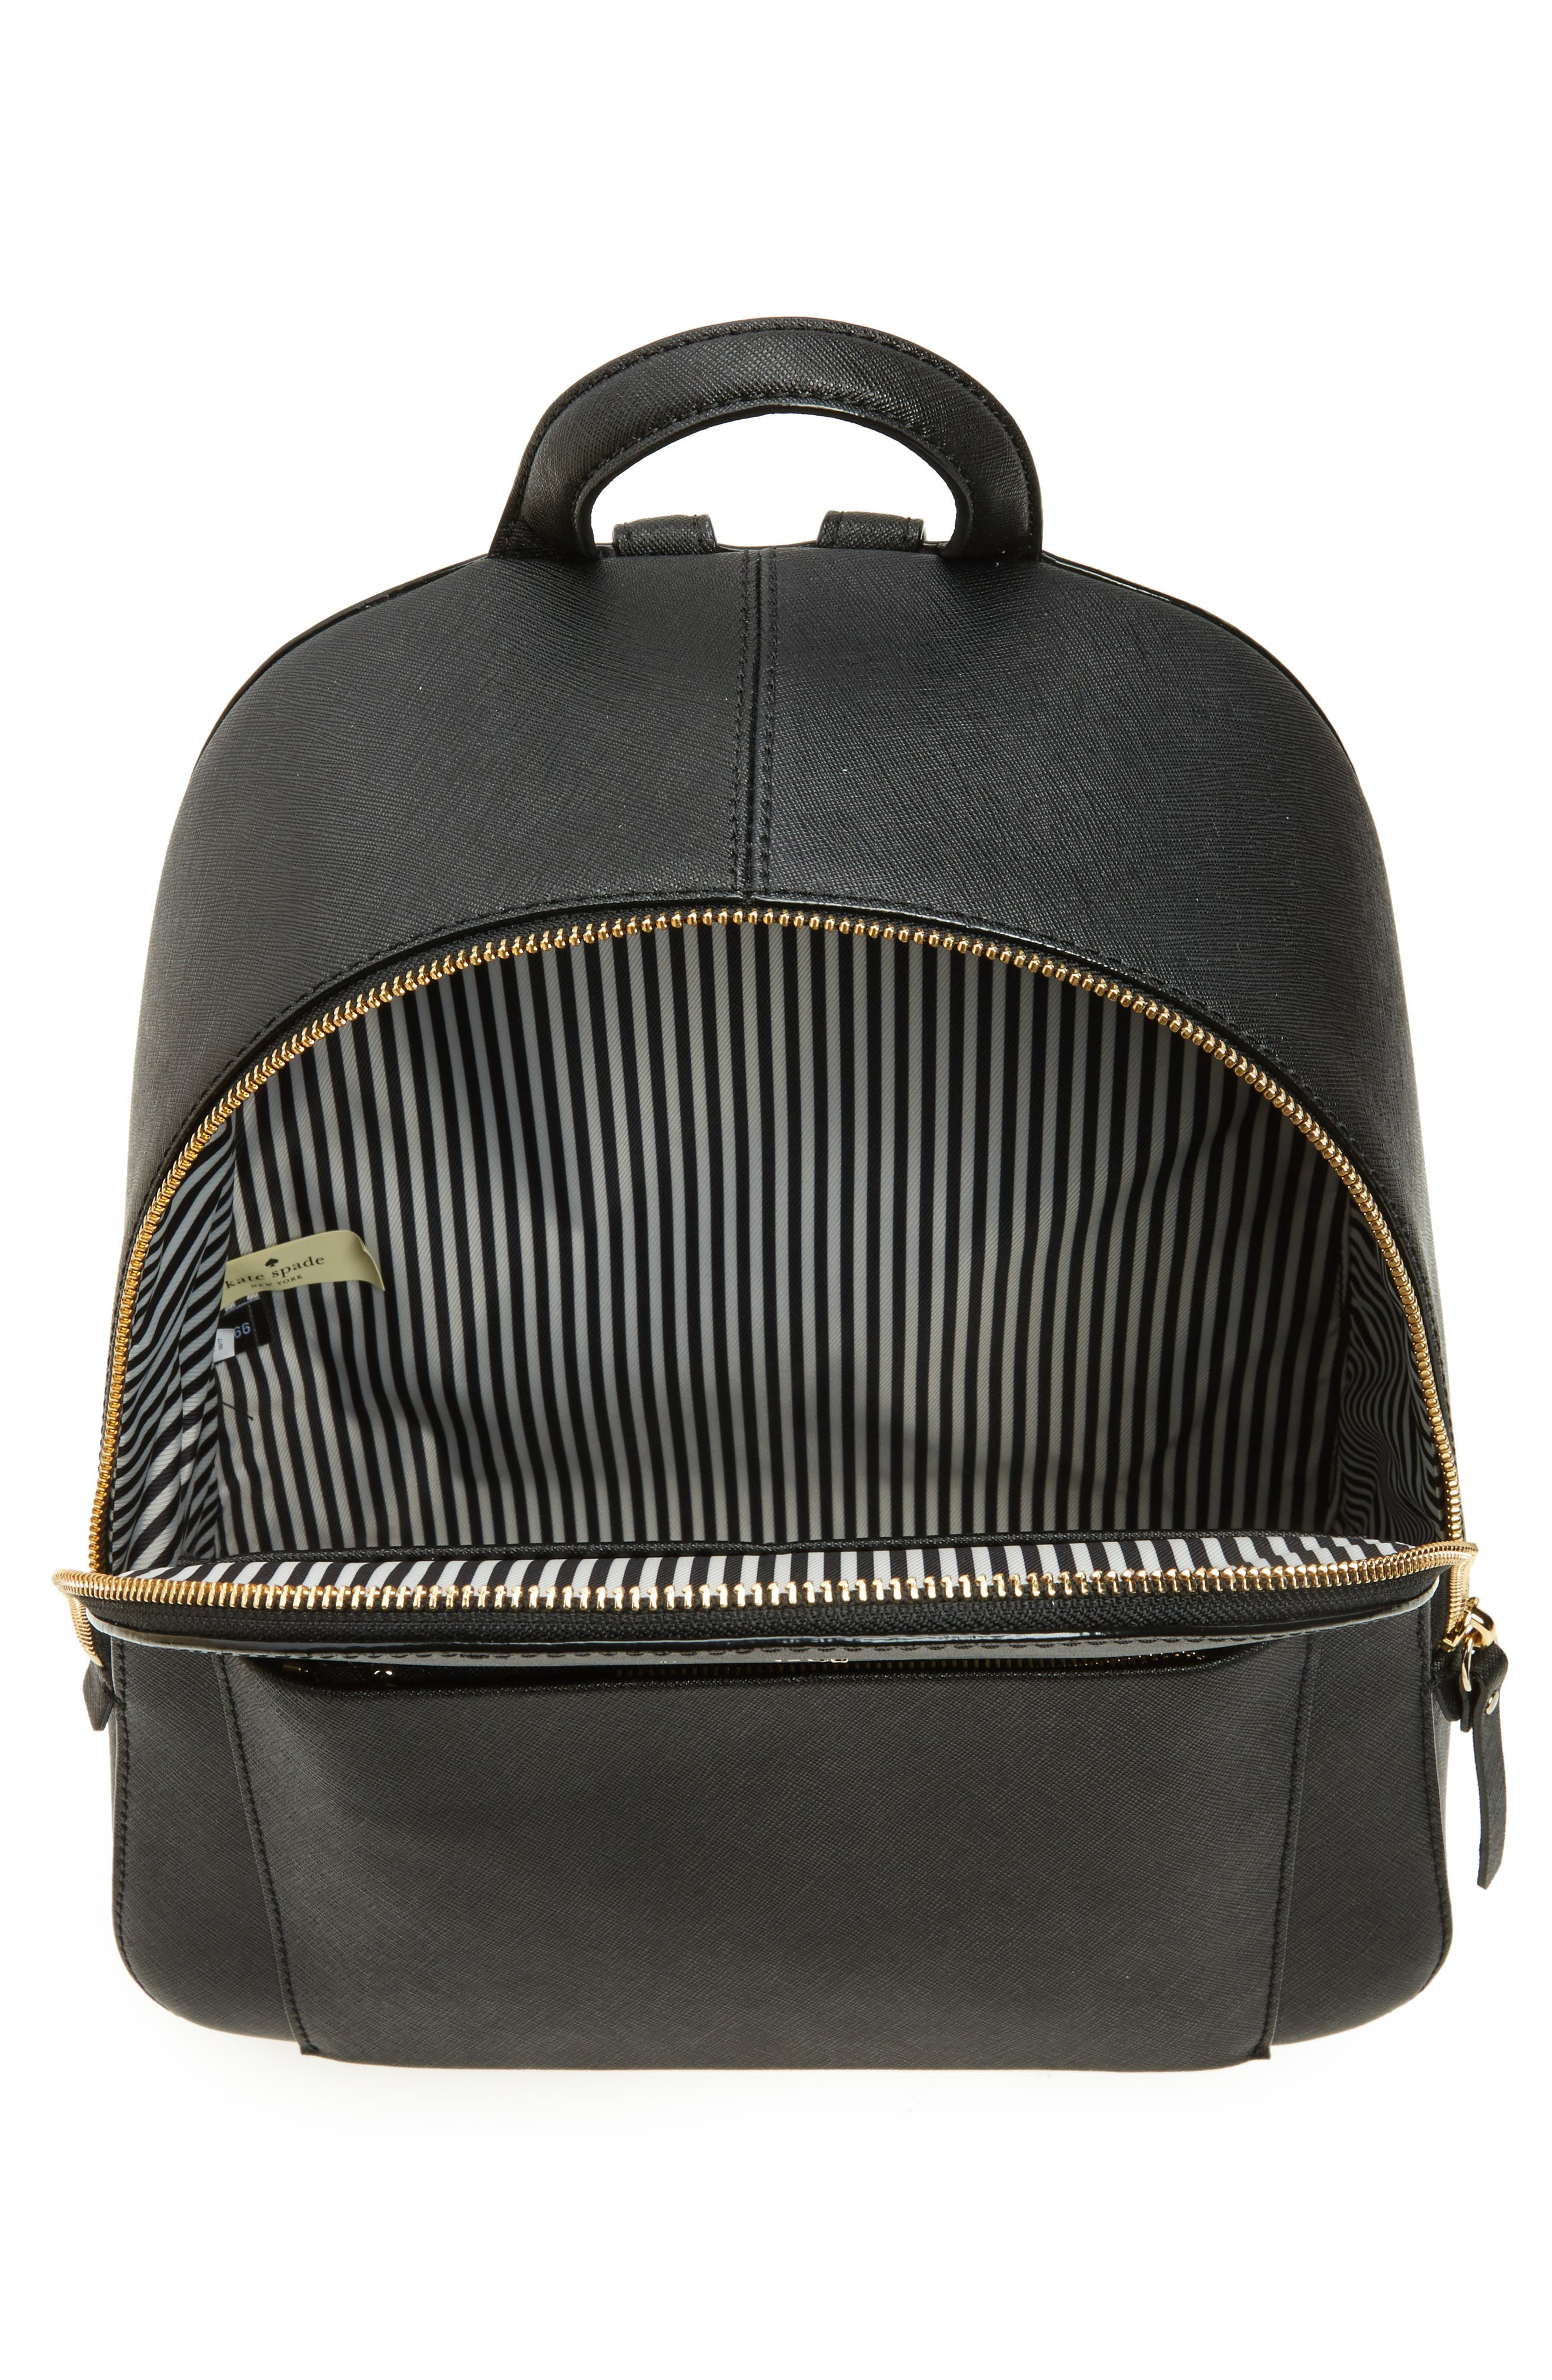 Alternate Image 3  - kate spade new york cameron street marisole leather backpack